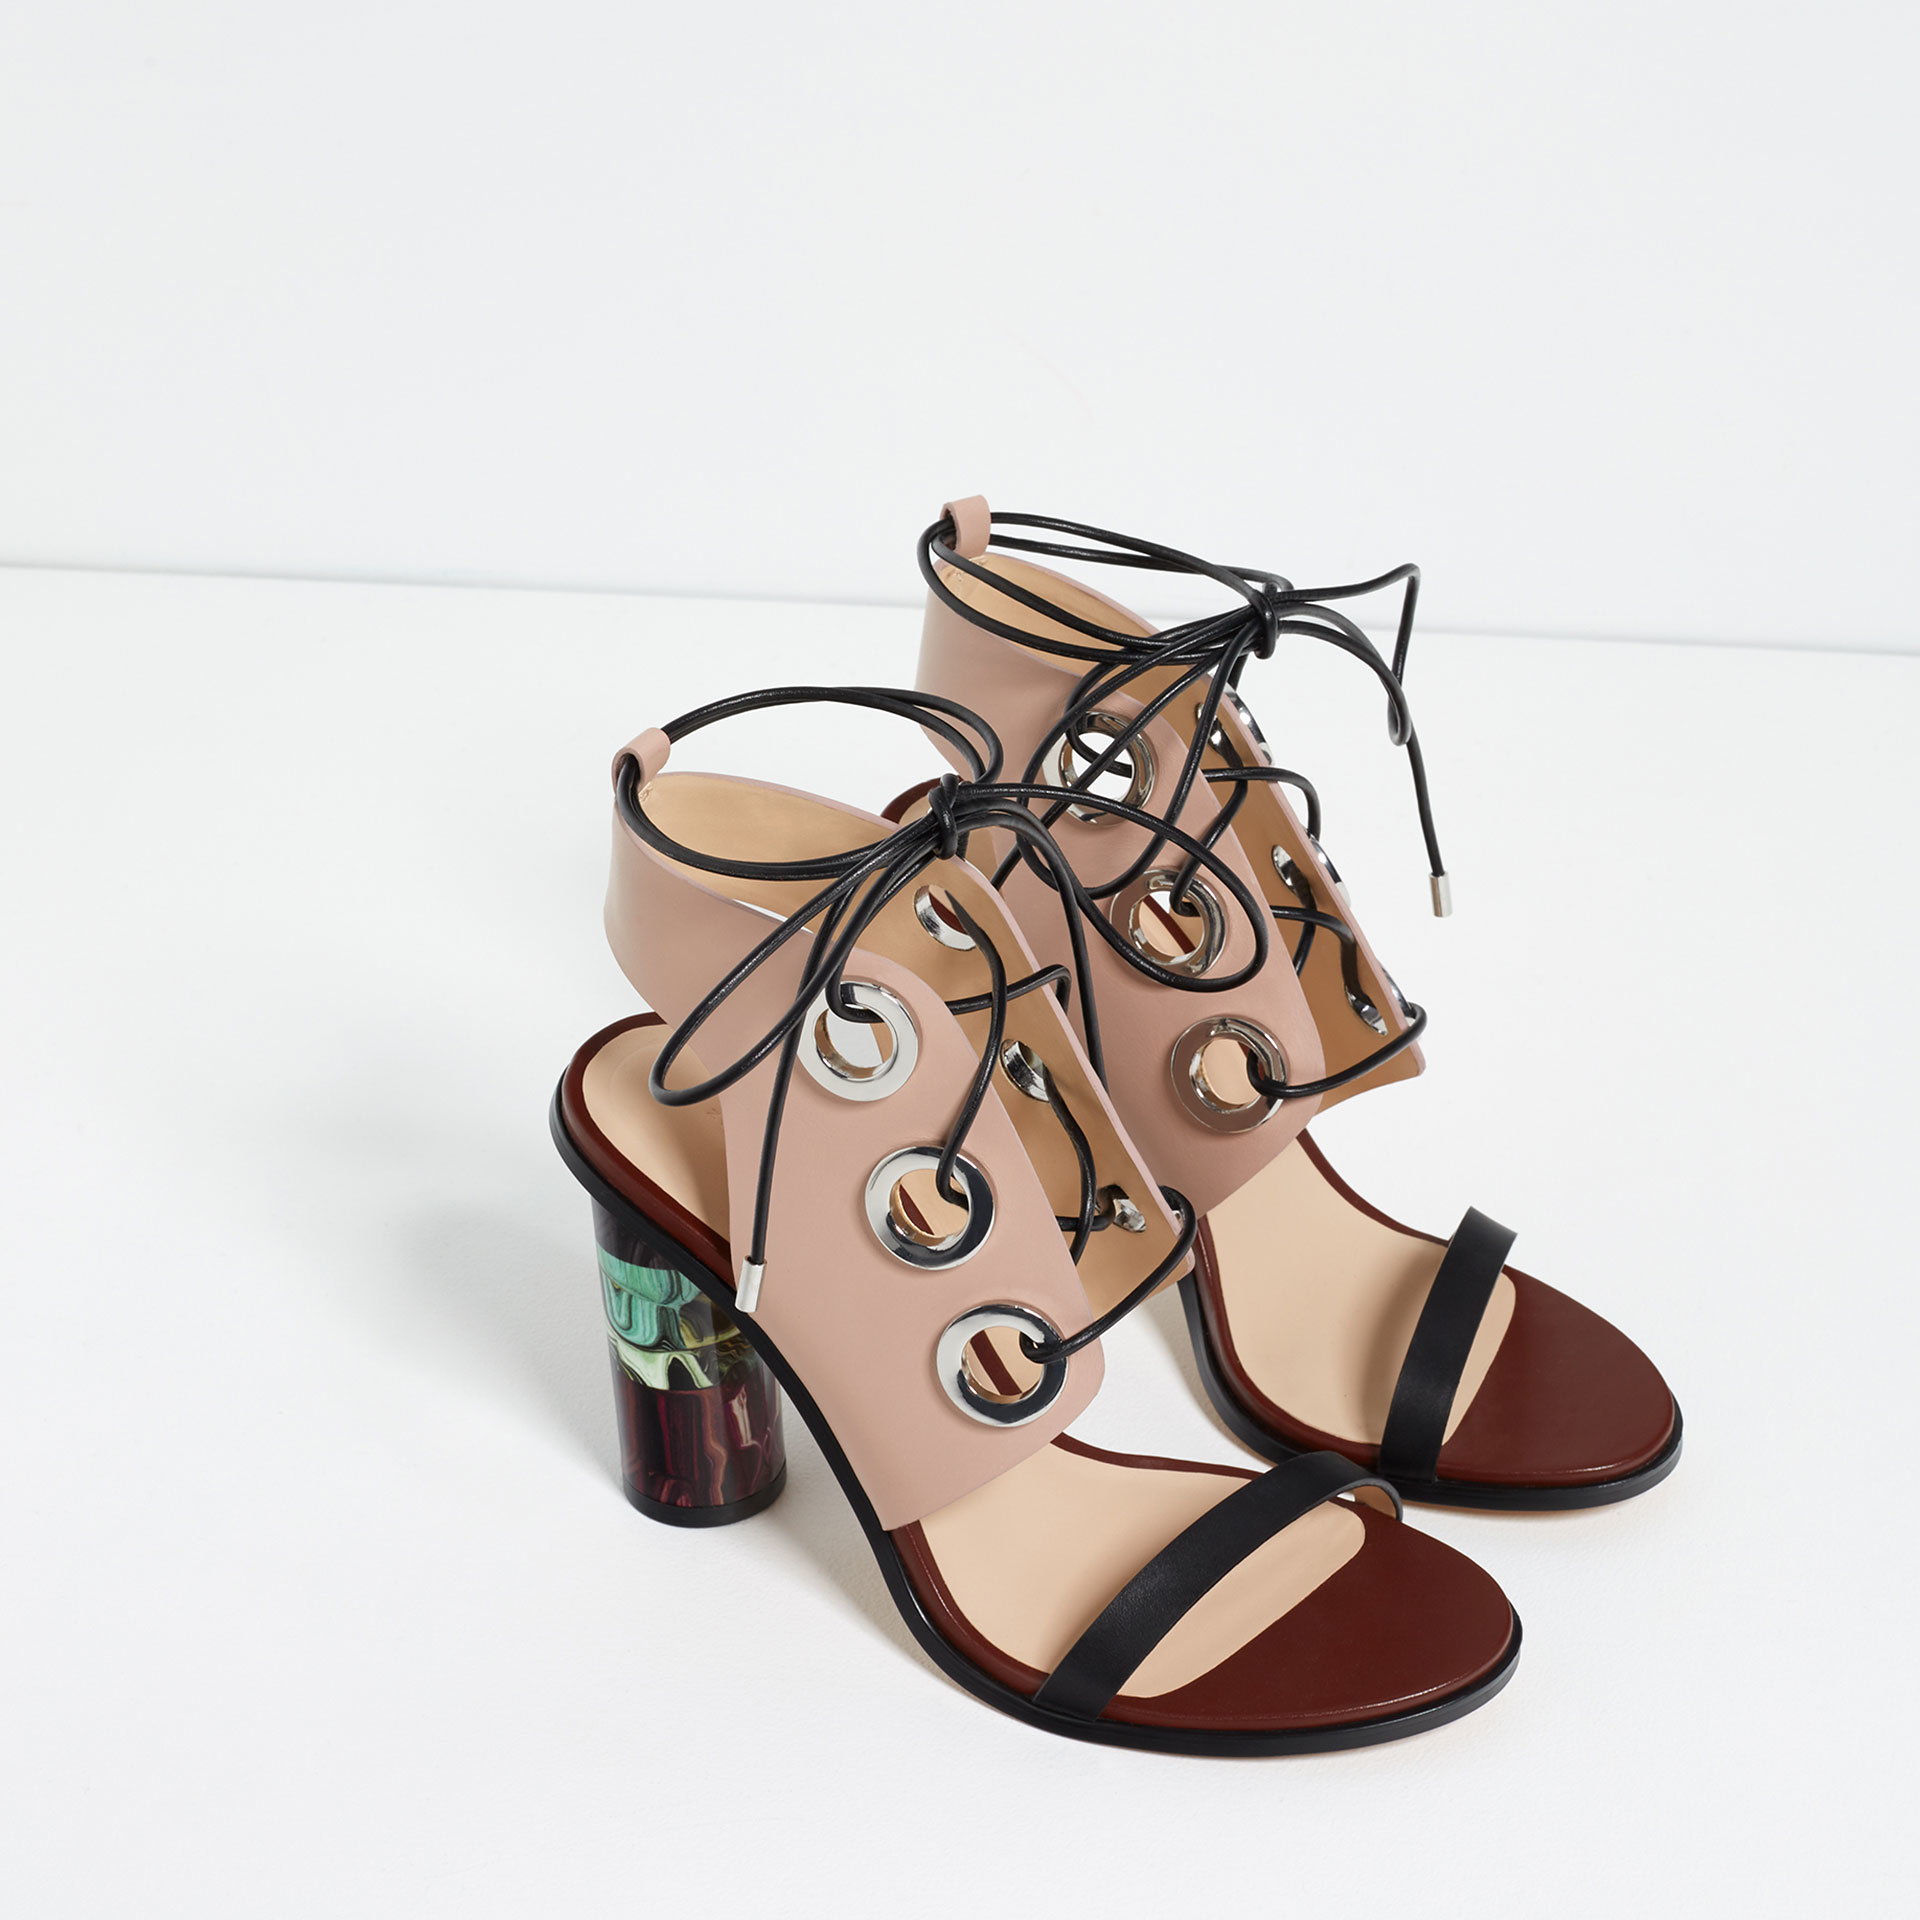 Womens sandals zara